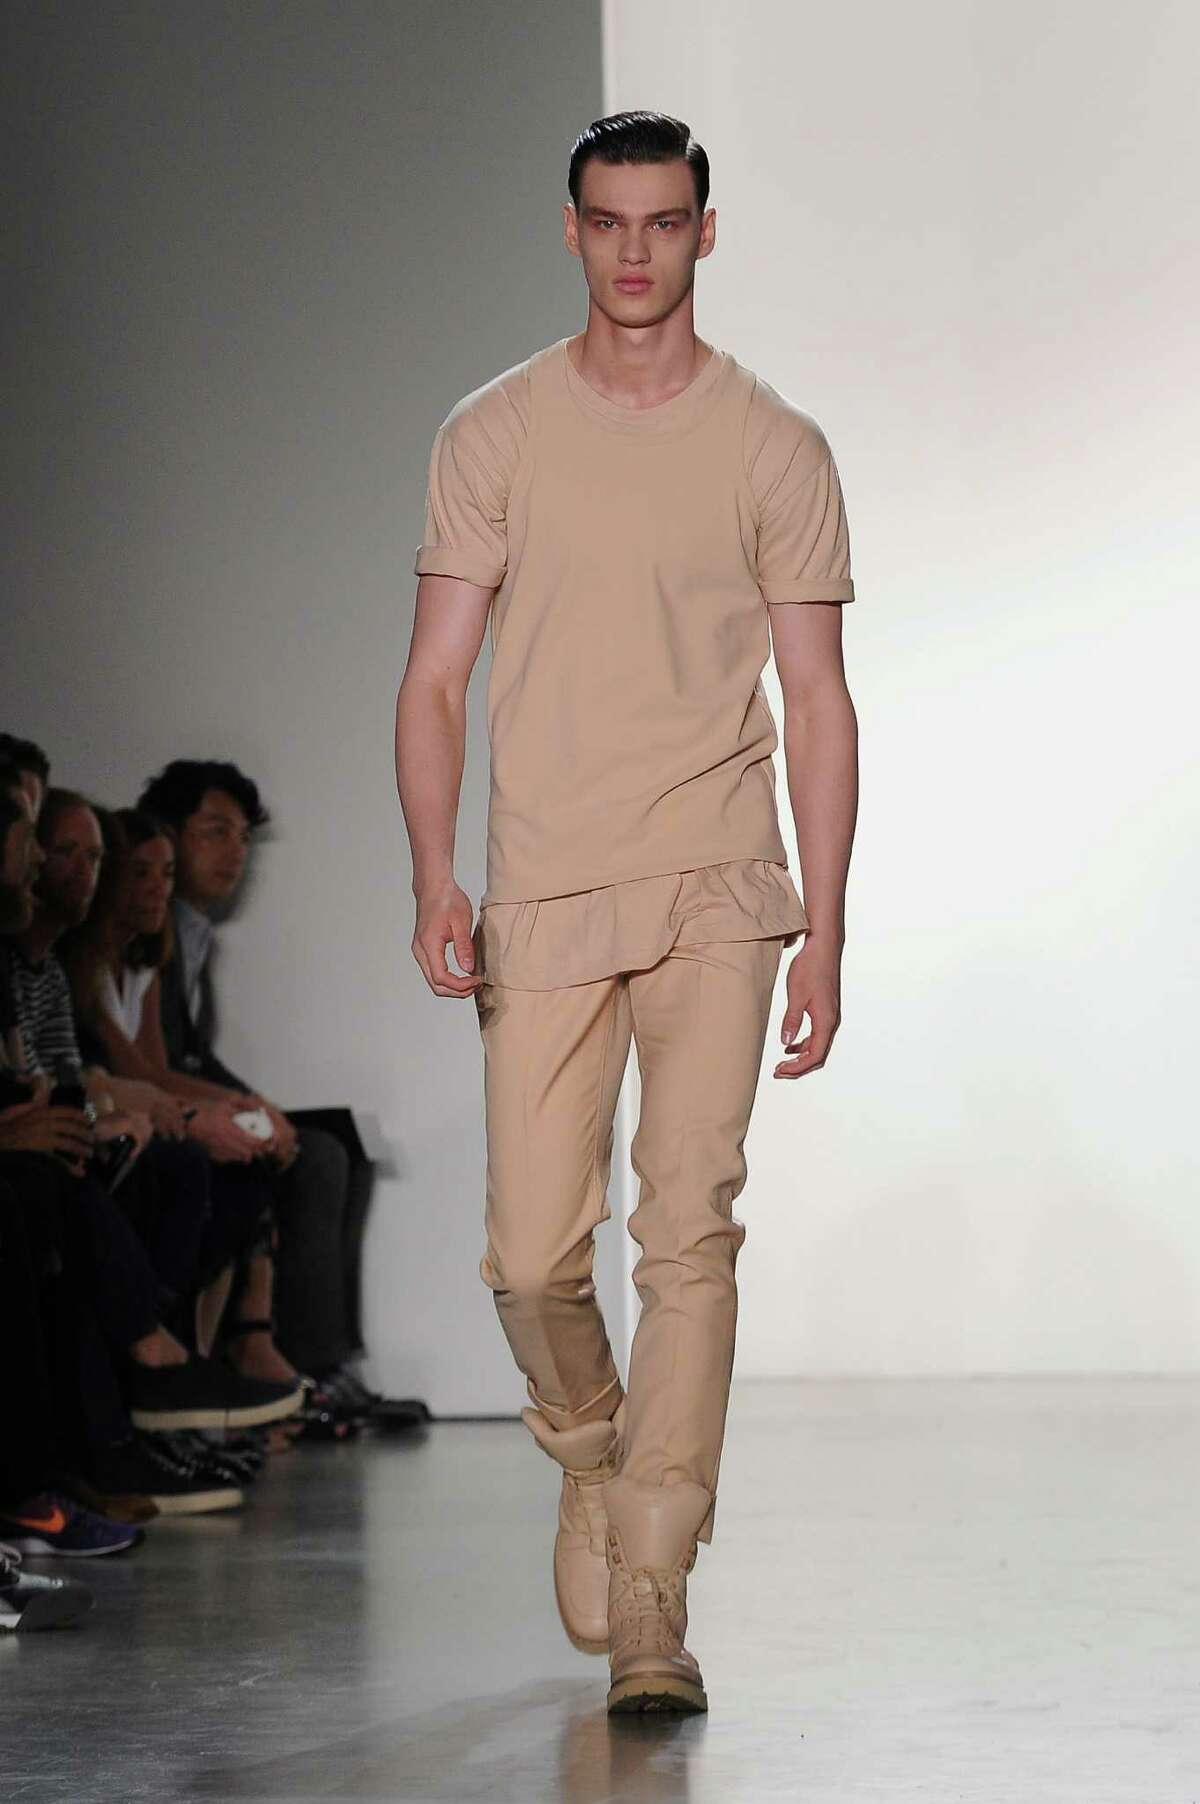 A neutral color palette is a key trend in menswear for spring 2015. Here's how to wear it as seen in this runway look from Calvin Klein's Spring/Summer 2015 collection.